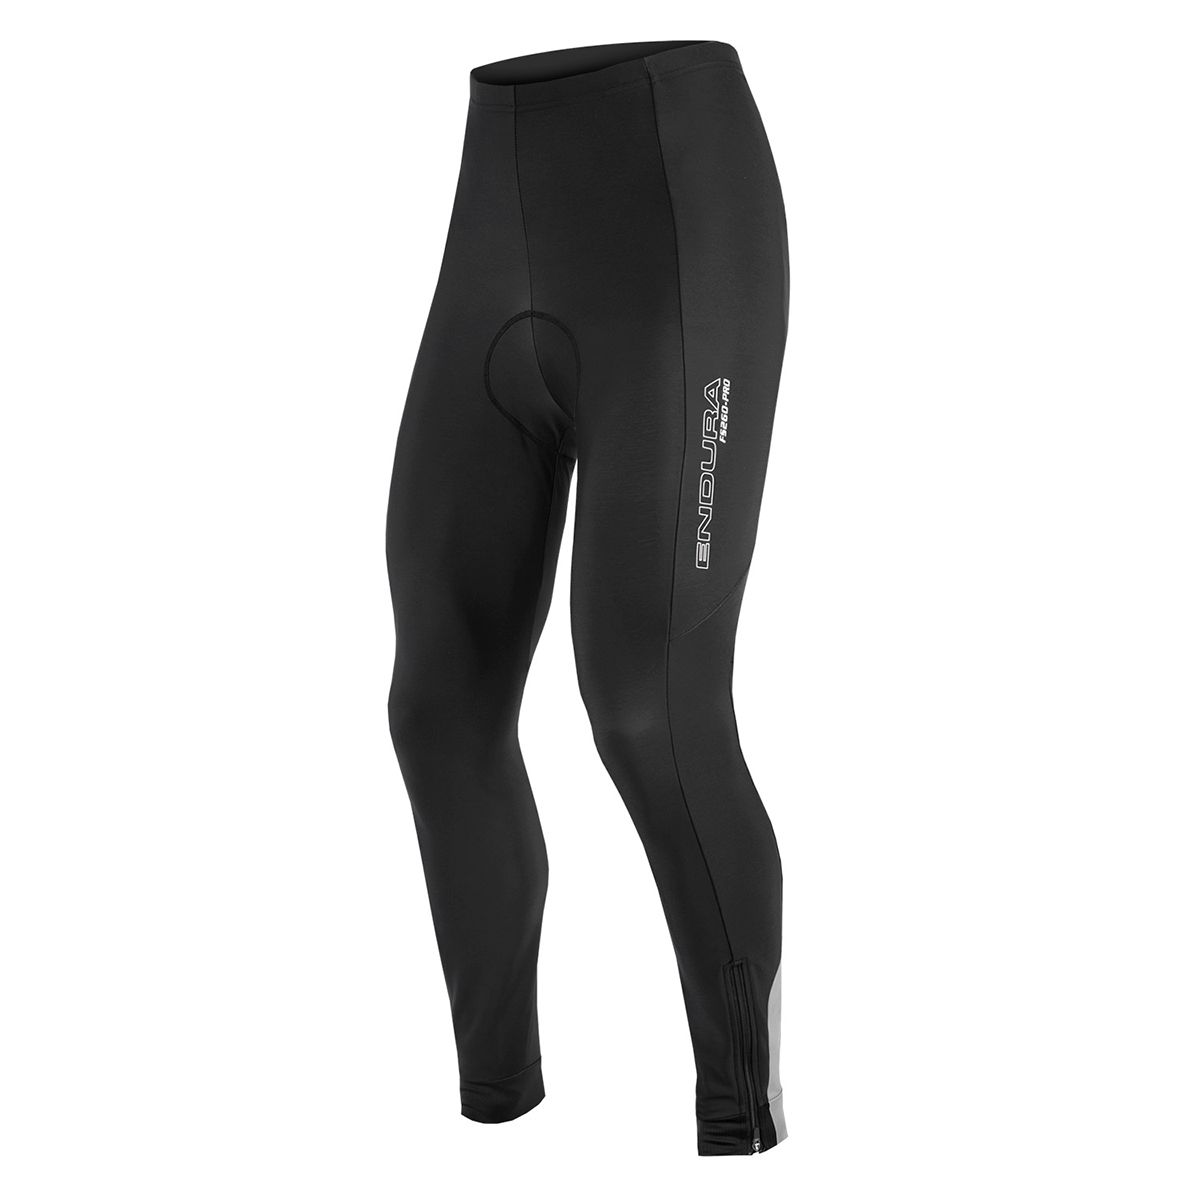 ENDURA FS260-PRO THERMO TIGHT for men | Trousers